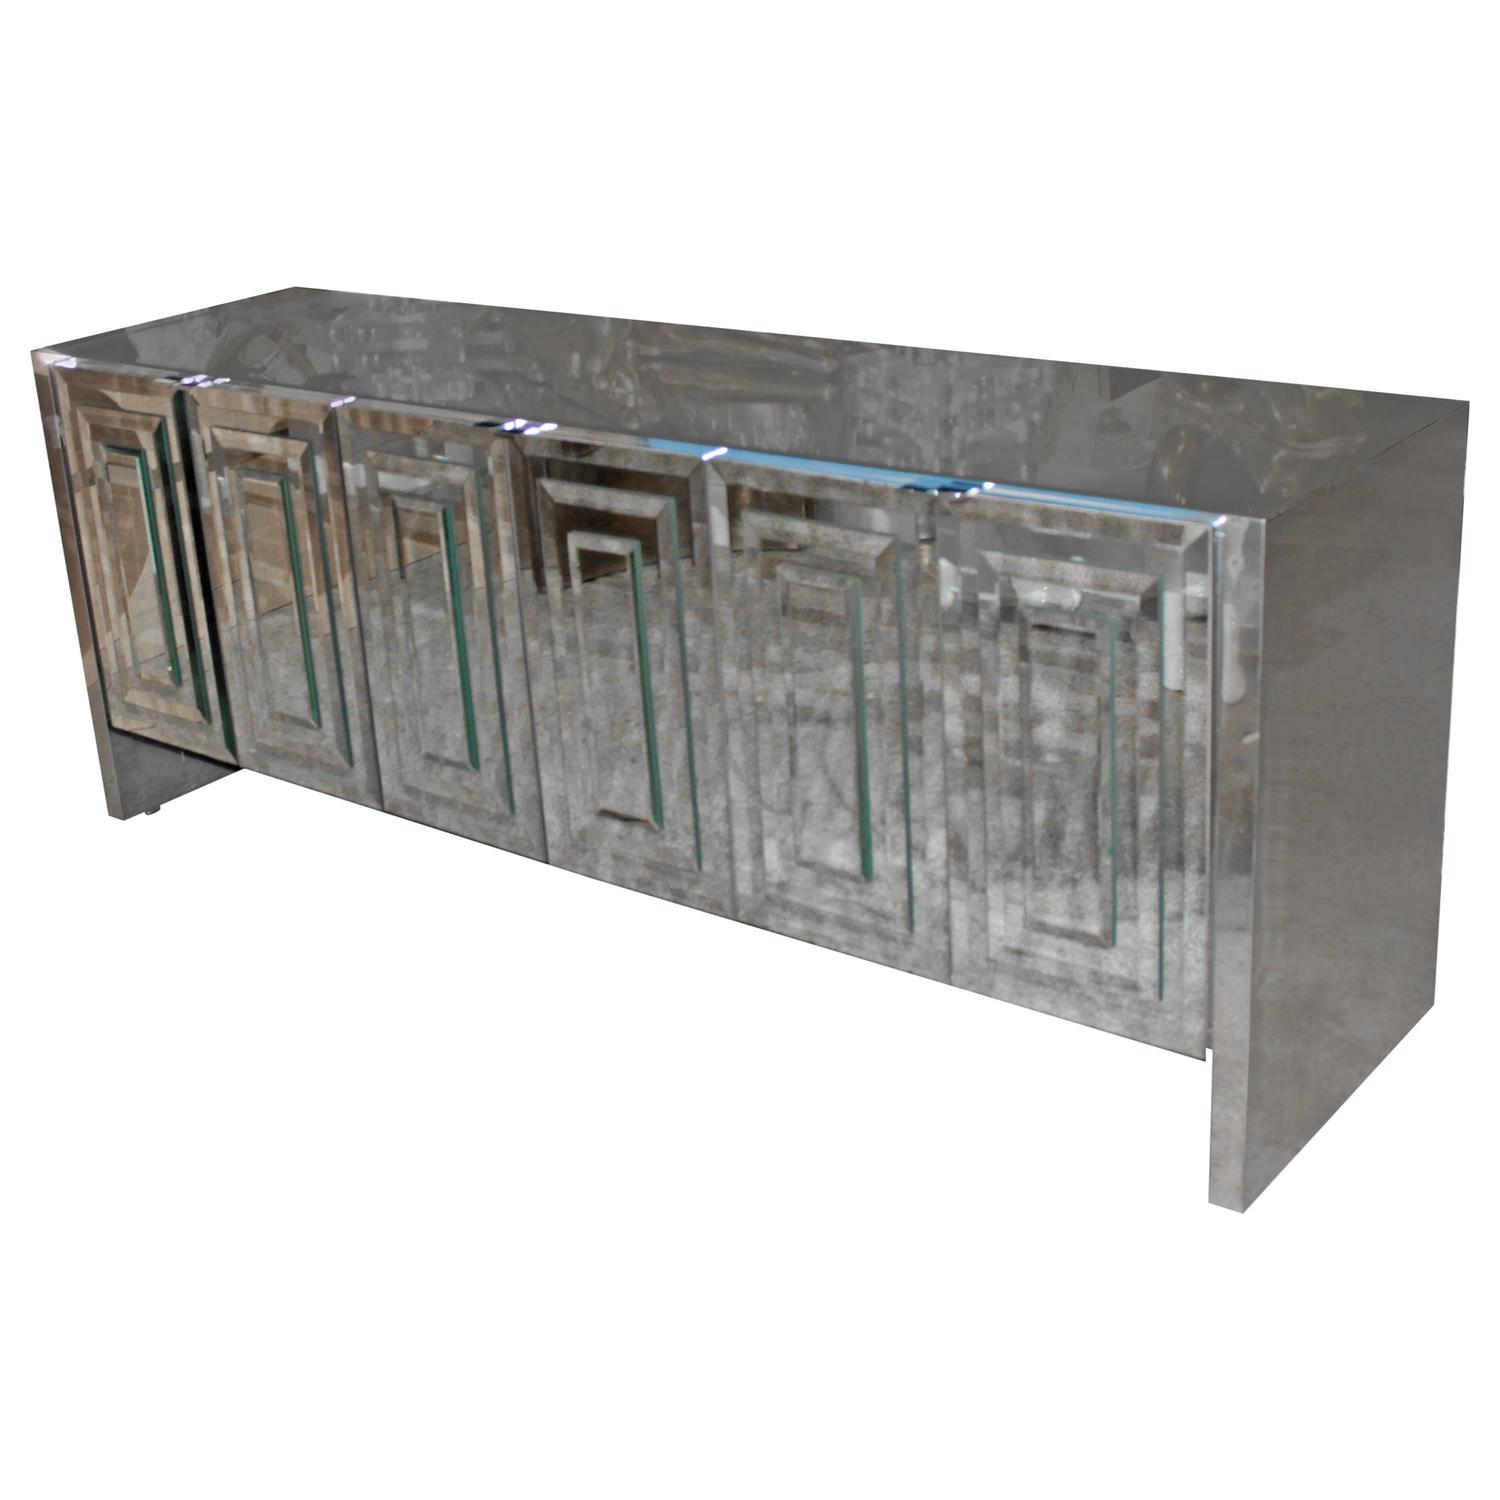 ello sixdoor mirrored chrome credenza for sale at stdibs -